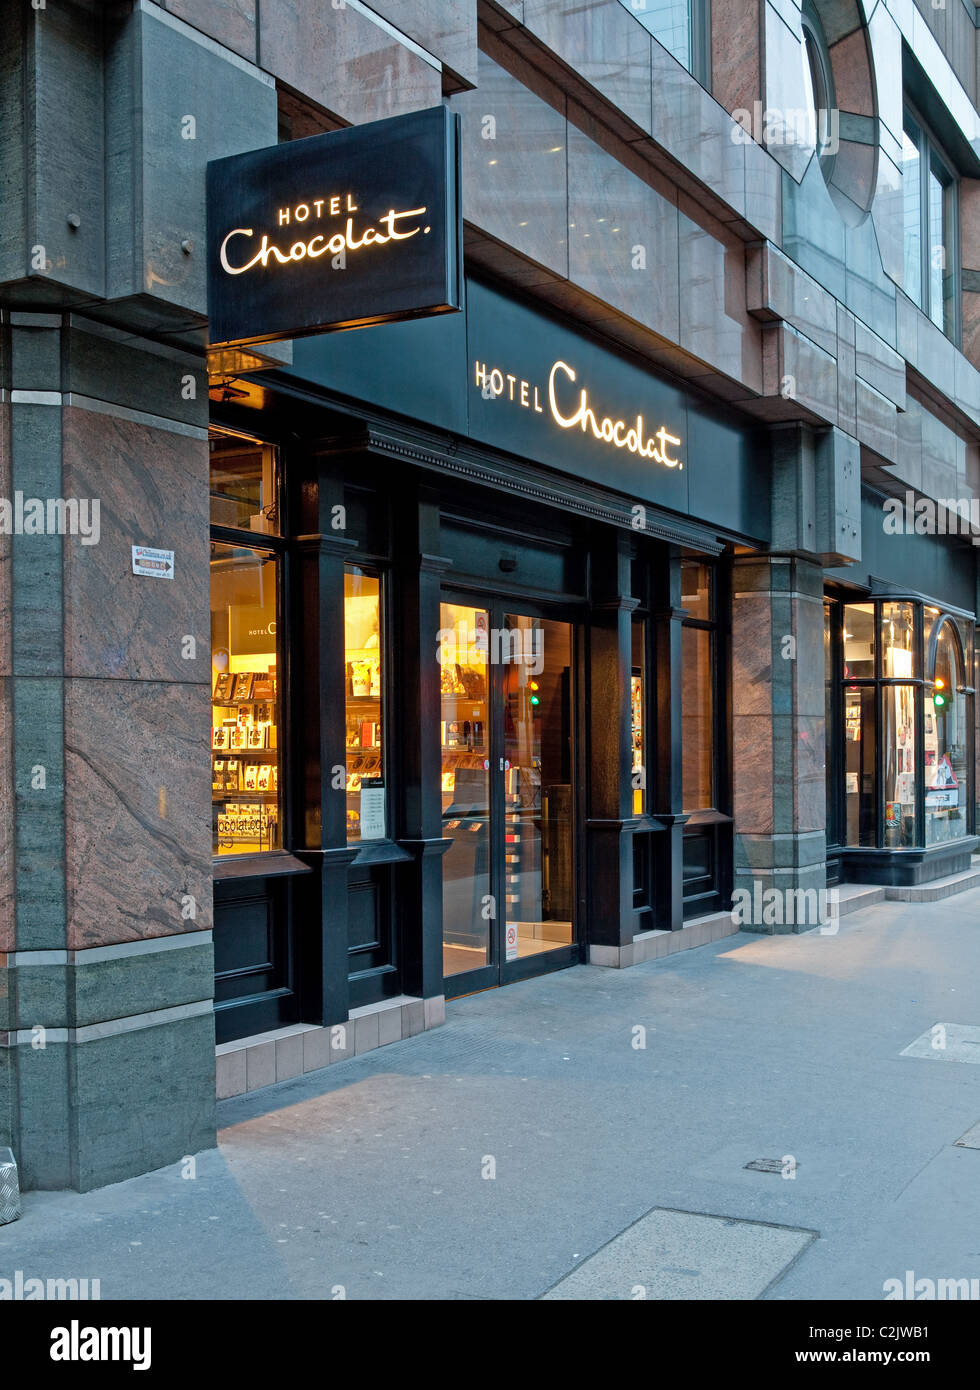 Hotel Chocolat store in London in the evening - Stock Image